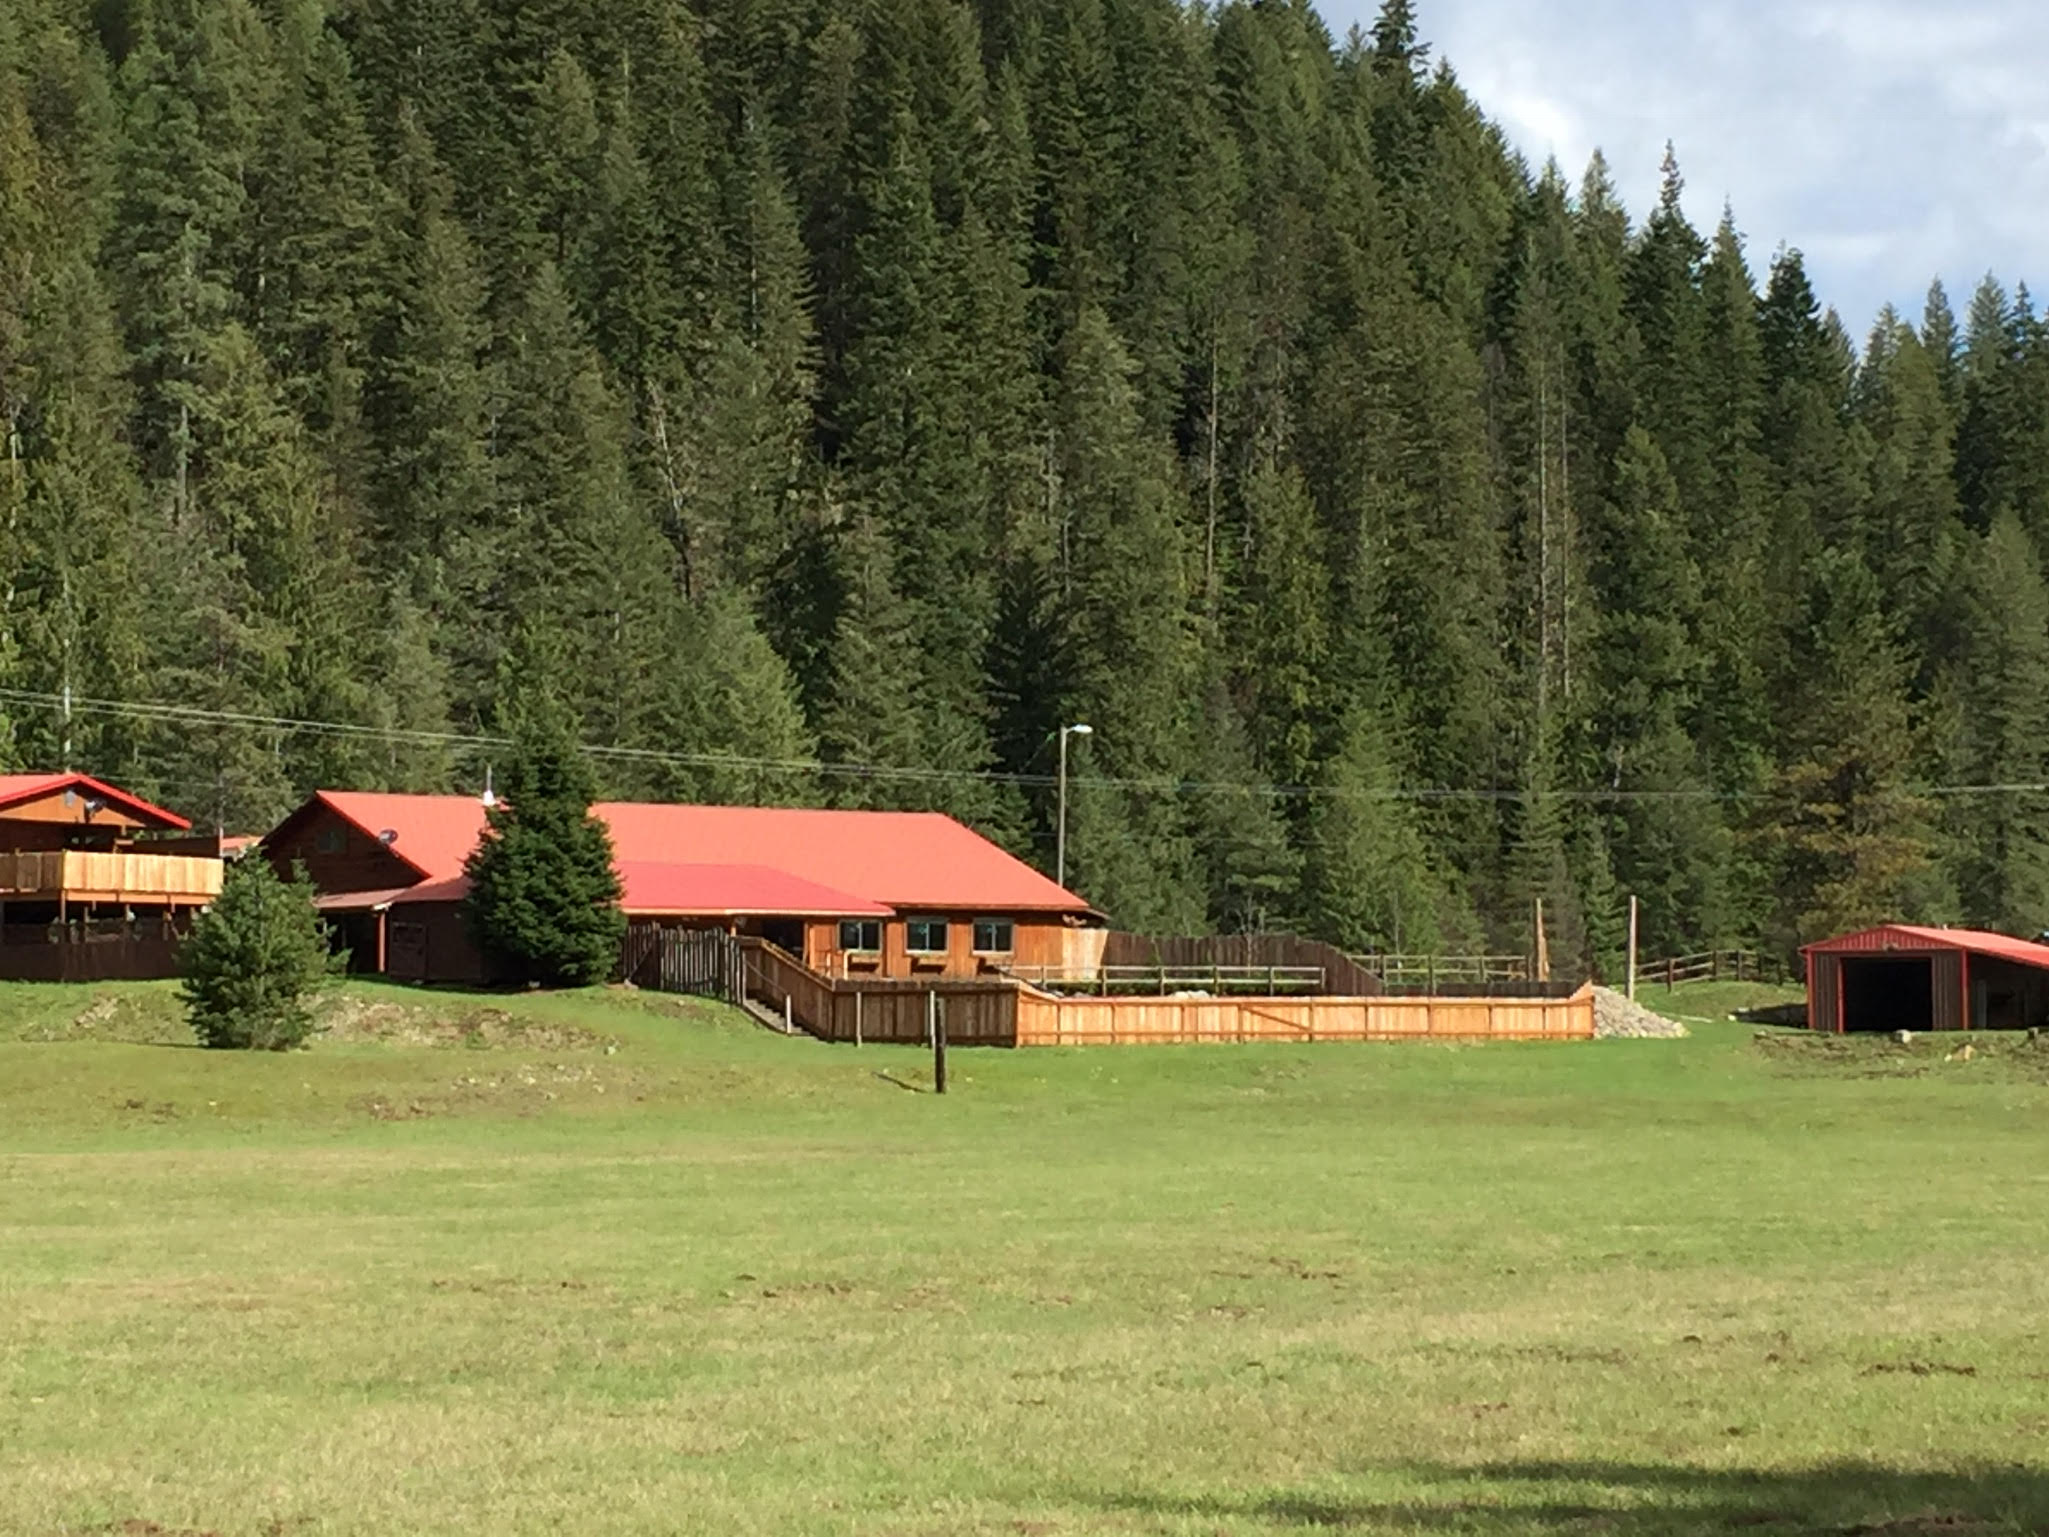 Featured Vendor: Upriver Lodge